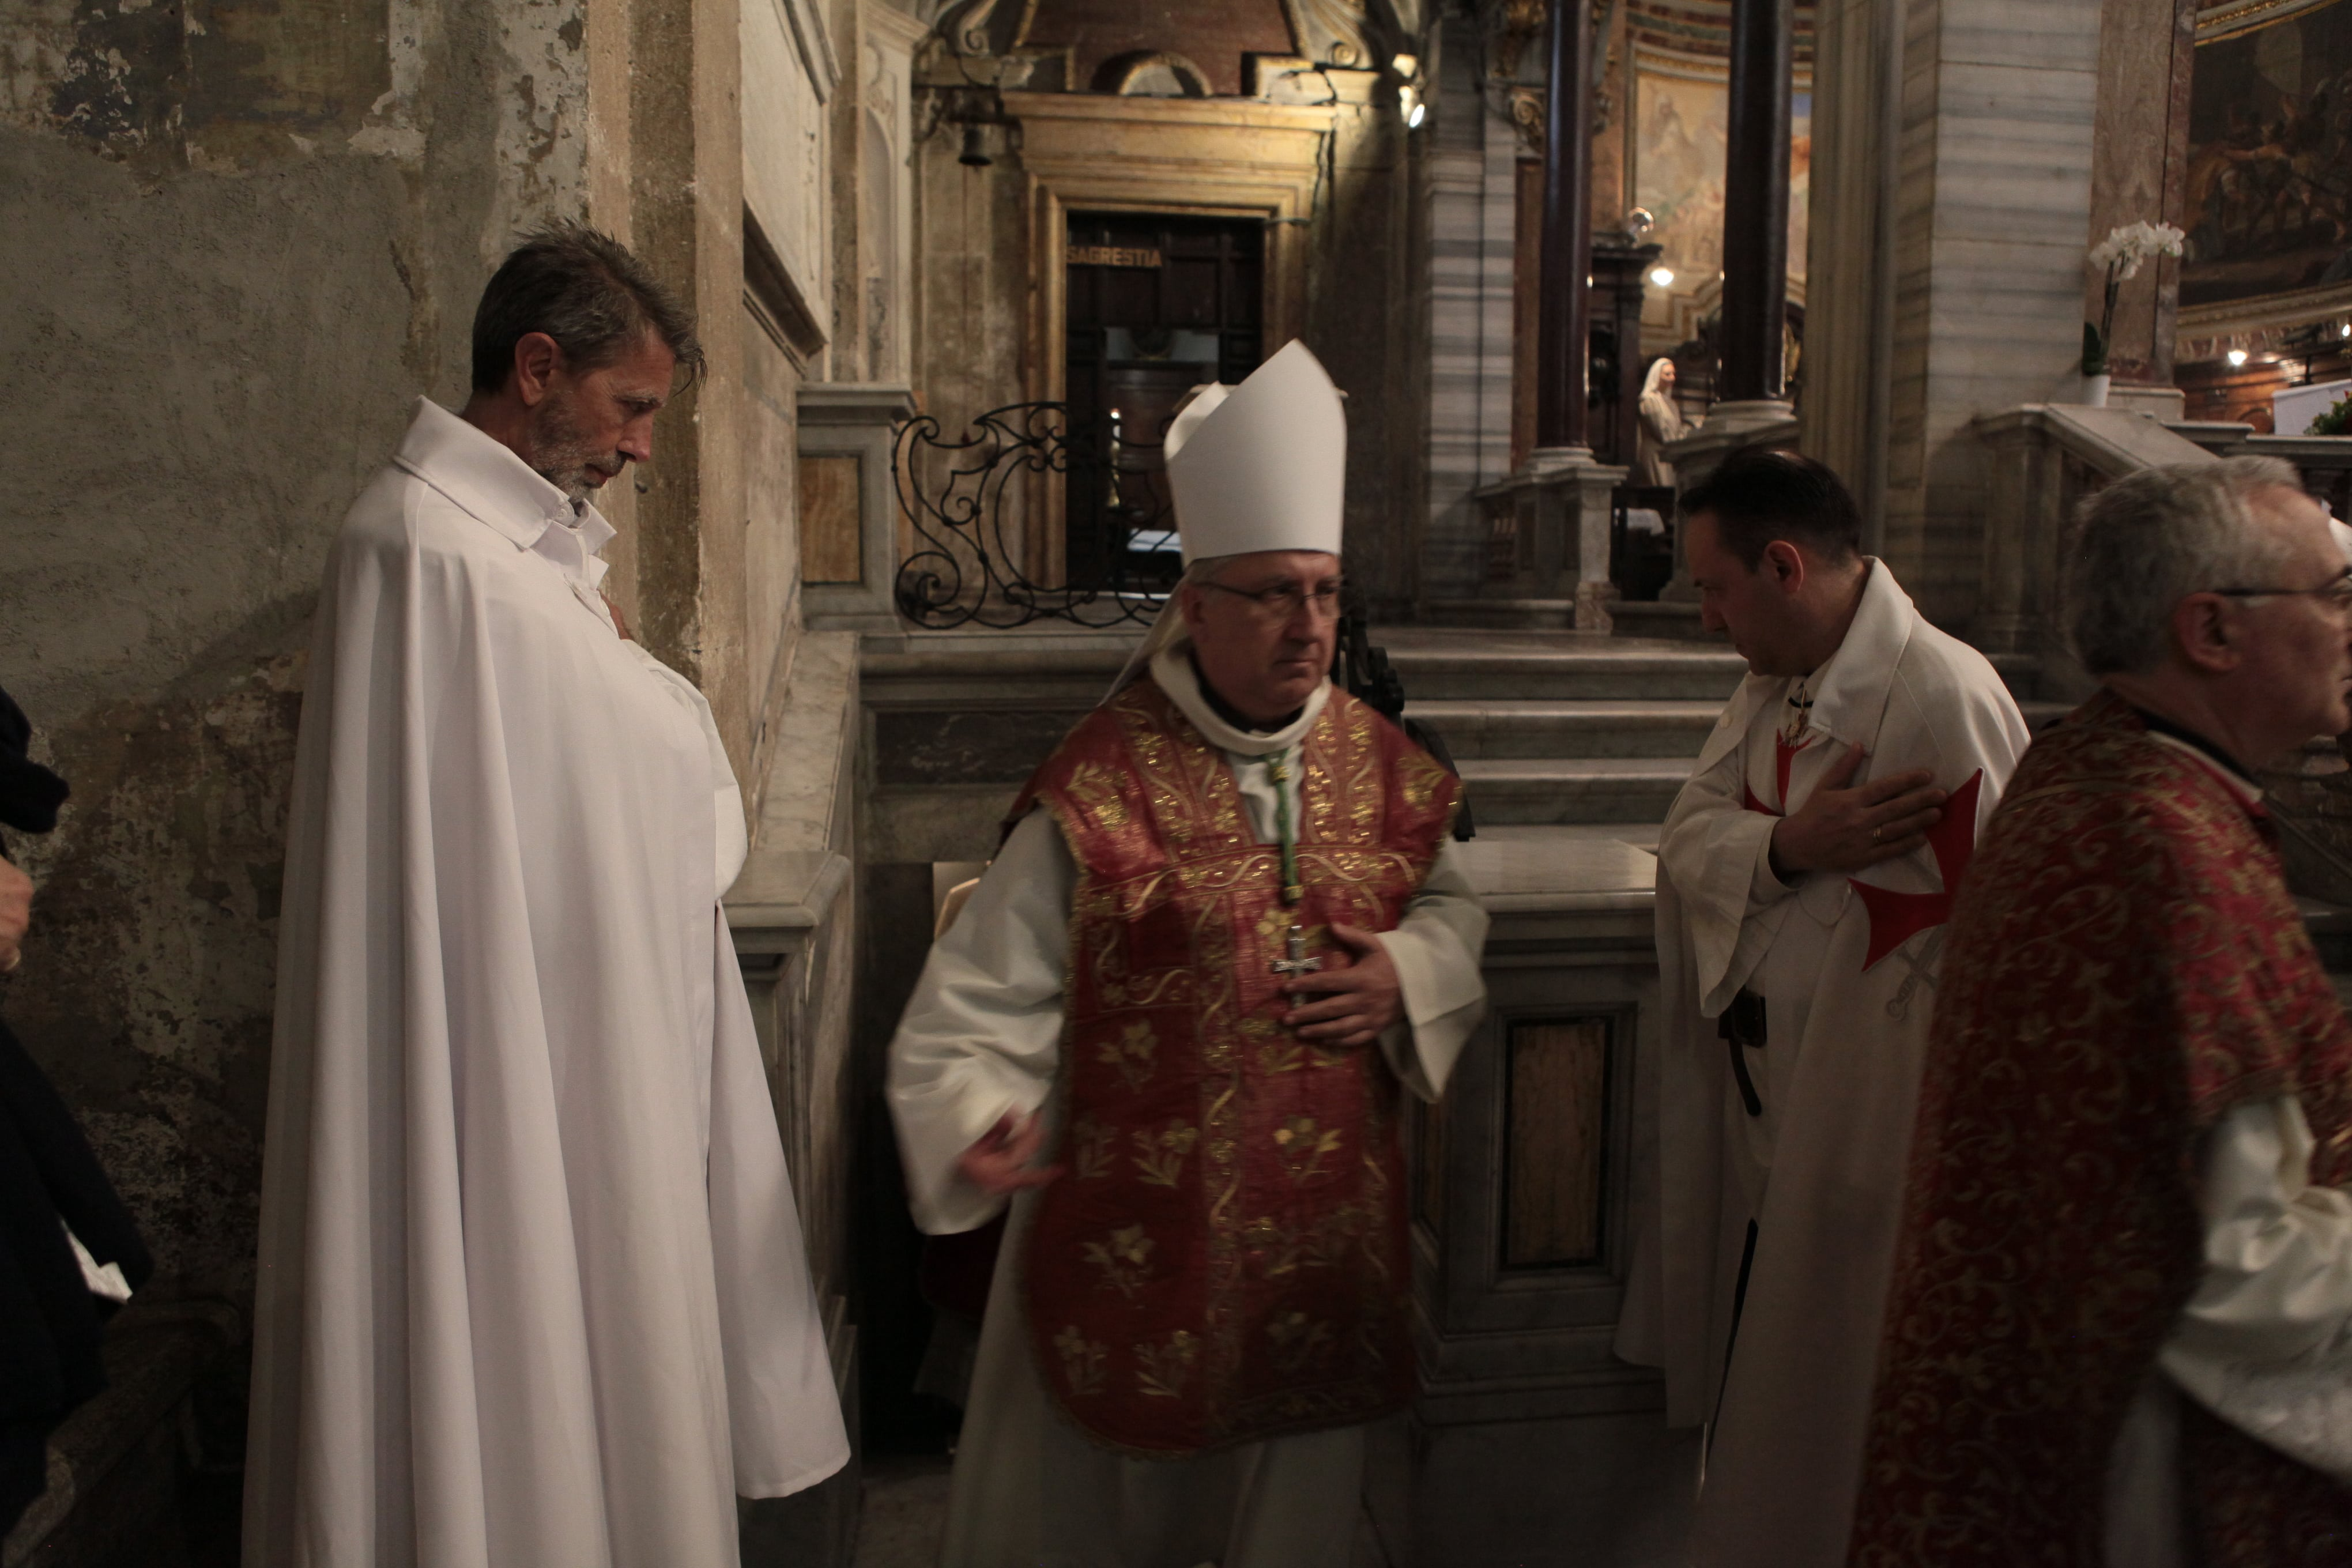 His Eminence Reverend Edwin Frederick Cardinal O'Brien Grand Master of the Equestrian Order of the Holy Sepulcher of Jerusalem celebrates Mass in the Basilica of San Marco Evangelista in Campidoglio